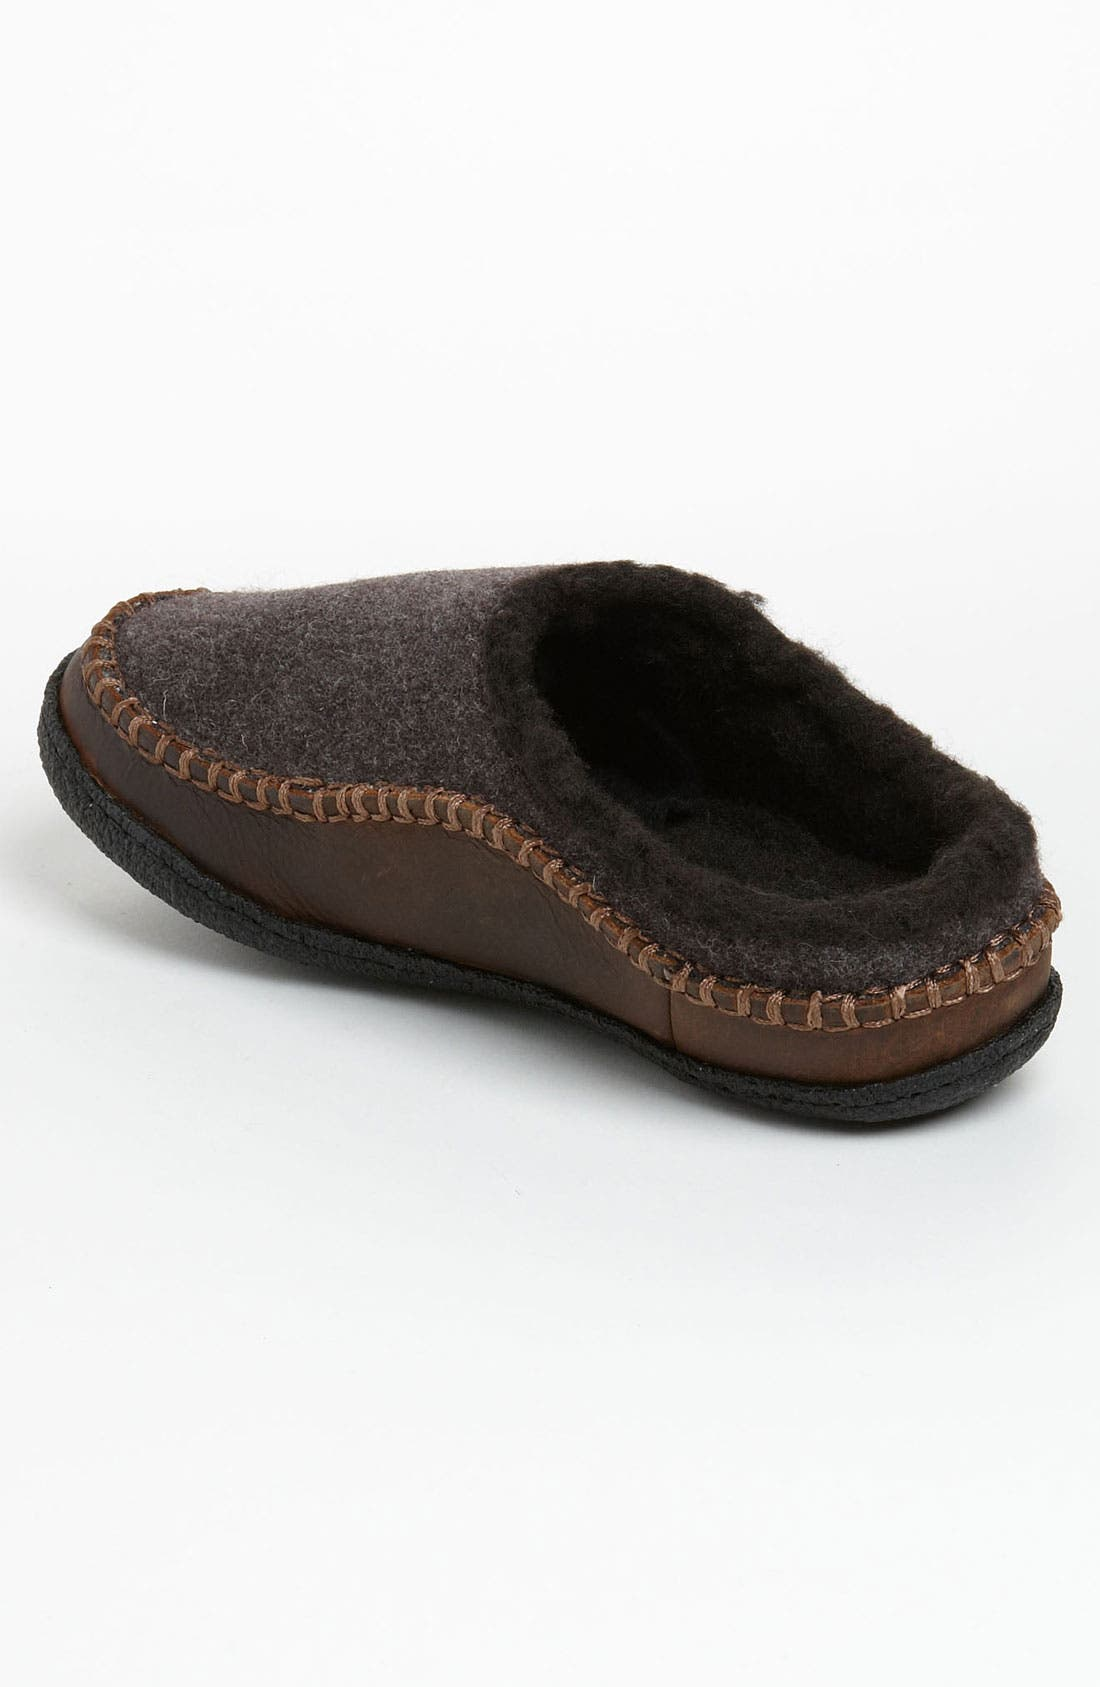 Alternate Image 2  - Sorel 'Falcon Ridge' Slipper